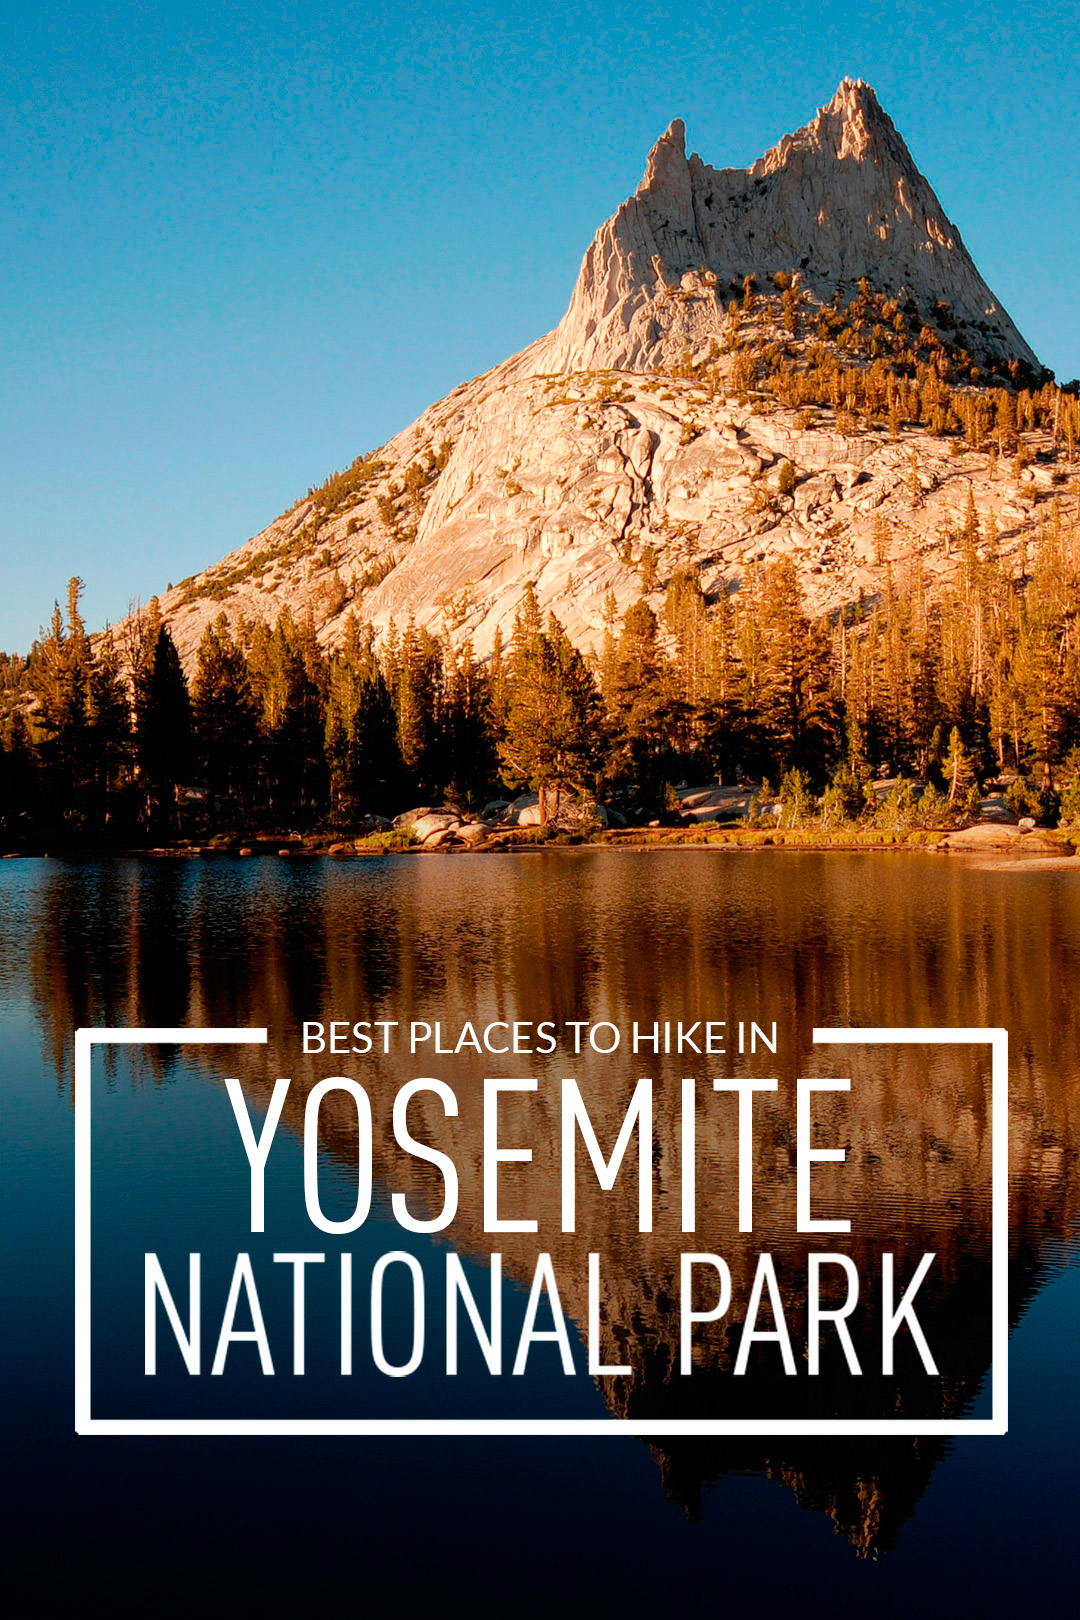 Traveling to Yosemite National Park? Take a look at these 11 best places to hike in Yosemite National Park. These Yosemite hiking trails are also some of the best hiking trails in California and the US that you'll want to add to your hiking bucket lists. They take you to some of the most beautiful places and best views in Yosemite. (photo: Cody Badger) // Local Adventurer #localadventurer #yosemite #california #nationalpark #visitcalifornia #visitca #findyourpark